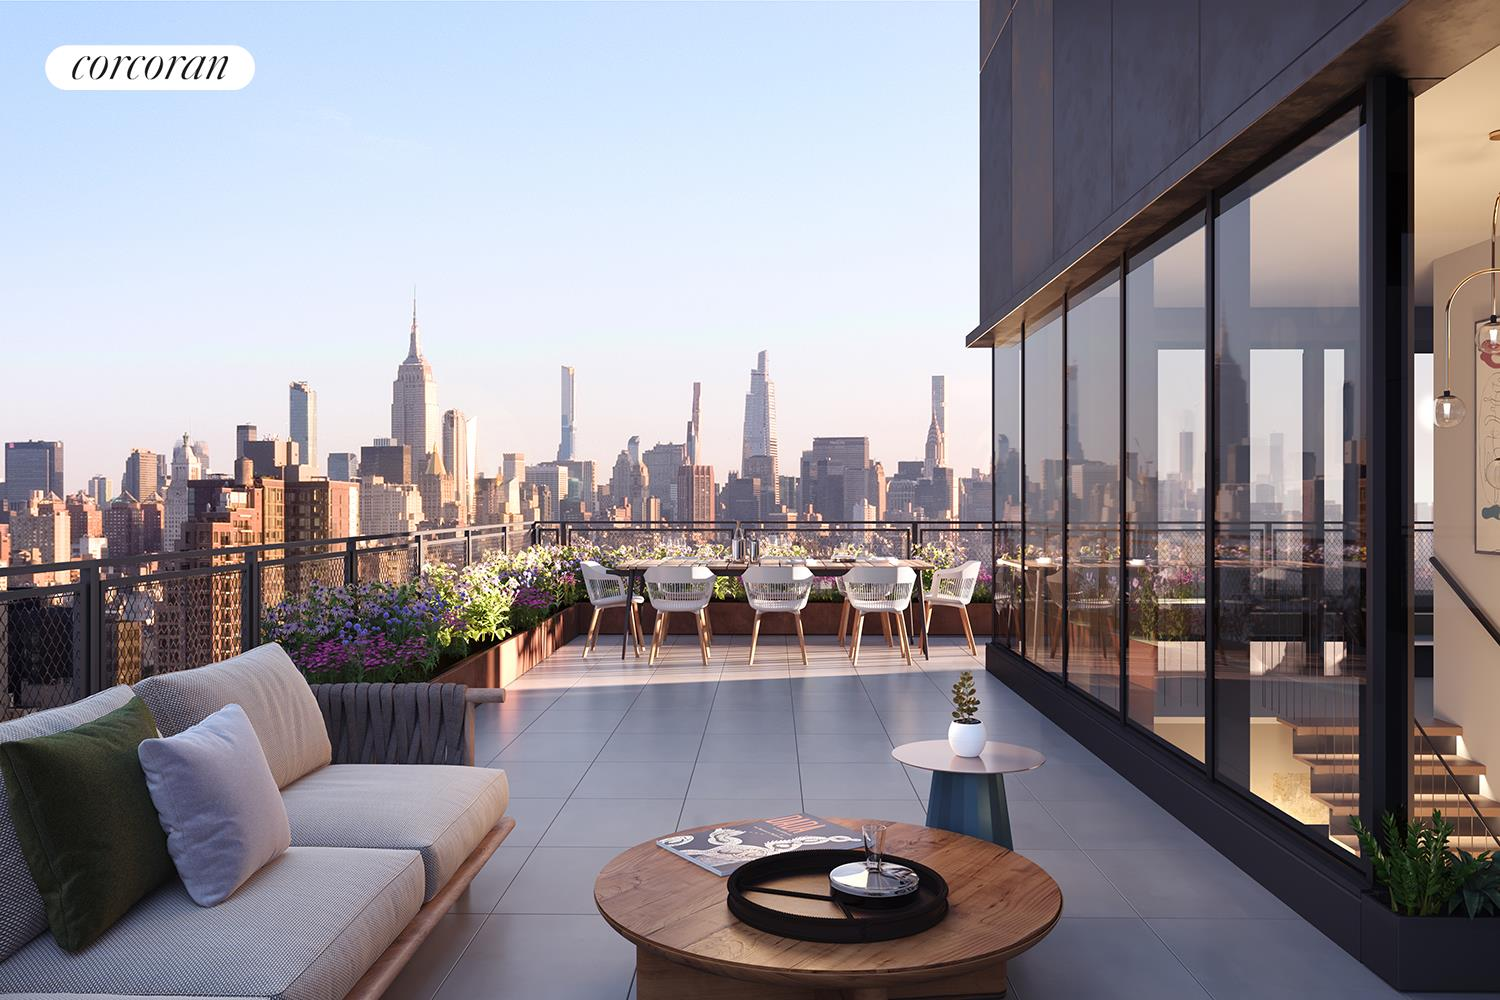 IMMINENT OCCUPANCY - PRIME NORTHWEST CORNER 3 BED/3.5 BATH PENTHOUSE WITH SPECTACULAR MIDTOWN AND FIDI VIEWSWrapping the northwest corner of One Essex Crossing, Penthouse A is the premier duplex Penthouse offering 2,161 SF and featuring fantastic views overlooking the Lower East Side, Midtown Skyline and Financial District.Penthouse A features a corner Great Room with western sunset views over Downtown Manhattan as well as panoramic city views north to the Empire State Building. An architectural staircase from the Great Room leads to a private 733 SF wraparound roof terrace. With ceilings of approximately 10', this CetraRuddy-designed home features wide plank European Oak flooring, a highly customized open kitchen with One Essex Crossing's noteworthy signature mesh storage cabinet incorporated into the backsplash, imported Italian cabinetry, and honed Dolomiti marble on the countertops and waterfall. A suite of professional Miele appliances includes a fully vented hood.The luxe Master Suite also enjoys stunning Midtown views, with a large bedroom; a generous walk-in closet; and a five-fixture master bathroom featuring a freestanding bathtub; Calacatta Lincoln marble walls, floors, and vanity countertop; radiant heated flooring; and a custom-designed medicine cabinet with a black metal frame and illuminated glass shelves.Two additional bedroom suites with Bianco Cararra marble-clad bathrooms and ample closets, a beautiful Romboo Nublado powder room for guests and a Miele washer/dryer complete this one-of-a-kind penthouse.One Essex Crossing offers residents a complete indoor/outdoor lifestyle package that connects to the heart of this beloved neighborhood. On the sixth floor two glass-walled amenity peninsulas are situated around The Garden, an over 9,000 square-foot landscaped terrace with spaces for lounging, grilling, outdoor exercise, and recreation. Residents can enjoy The Sun Room, The Fitness Studio, both with garden views, and The Playroom, all thoughtfully de